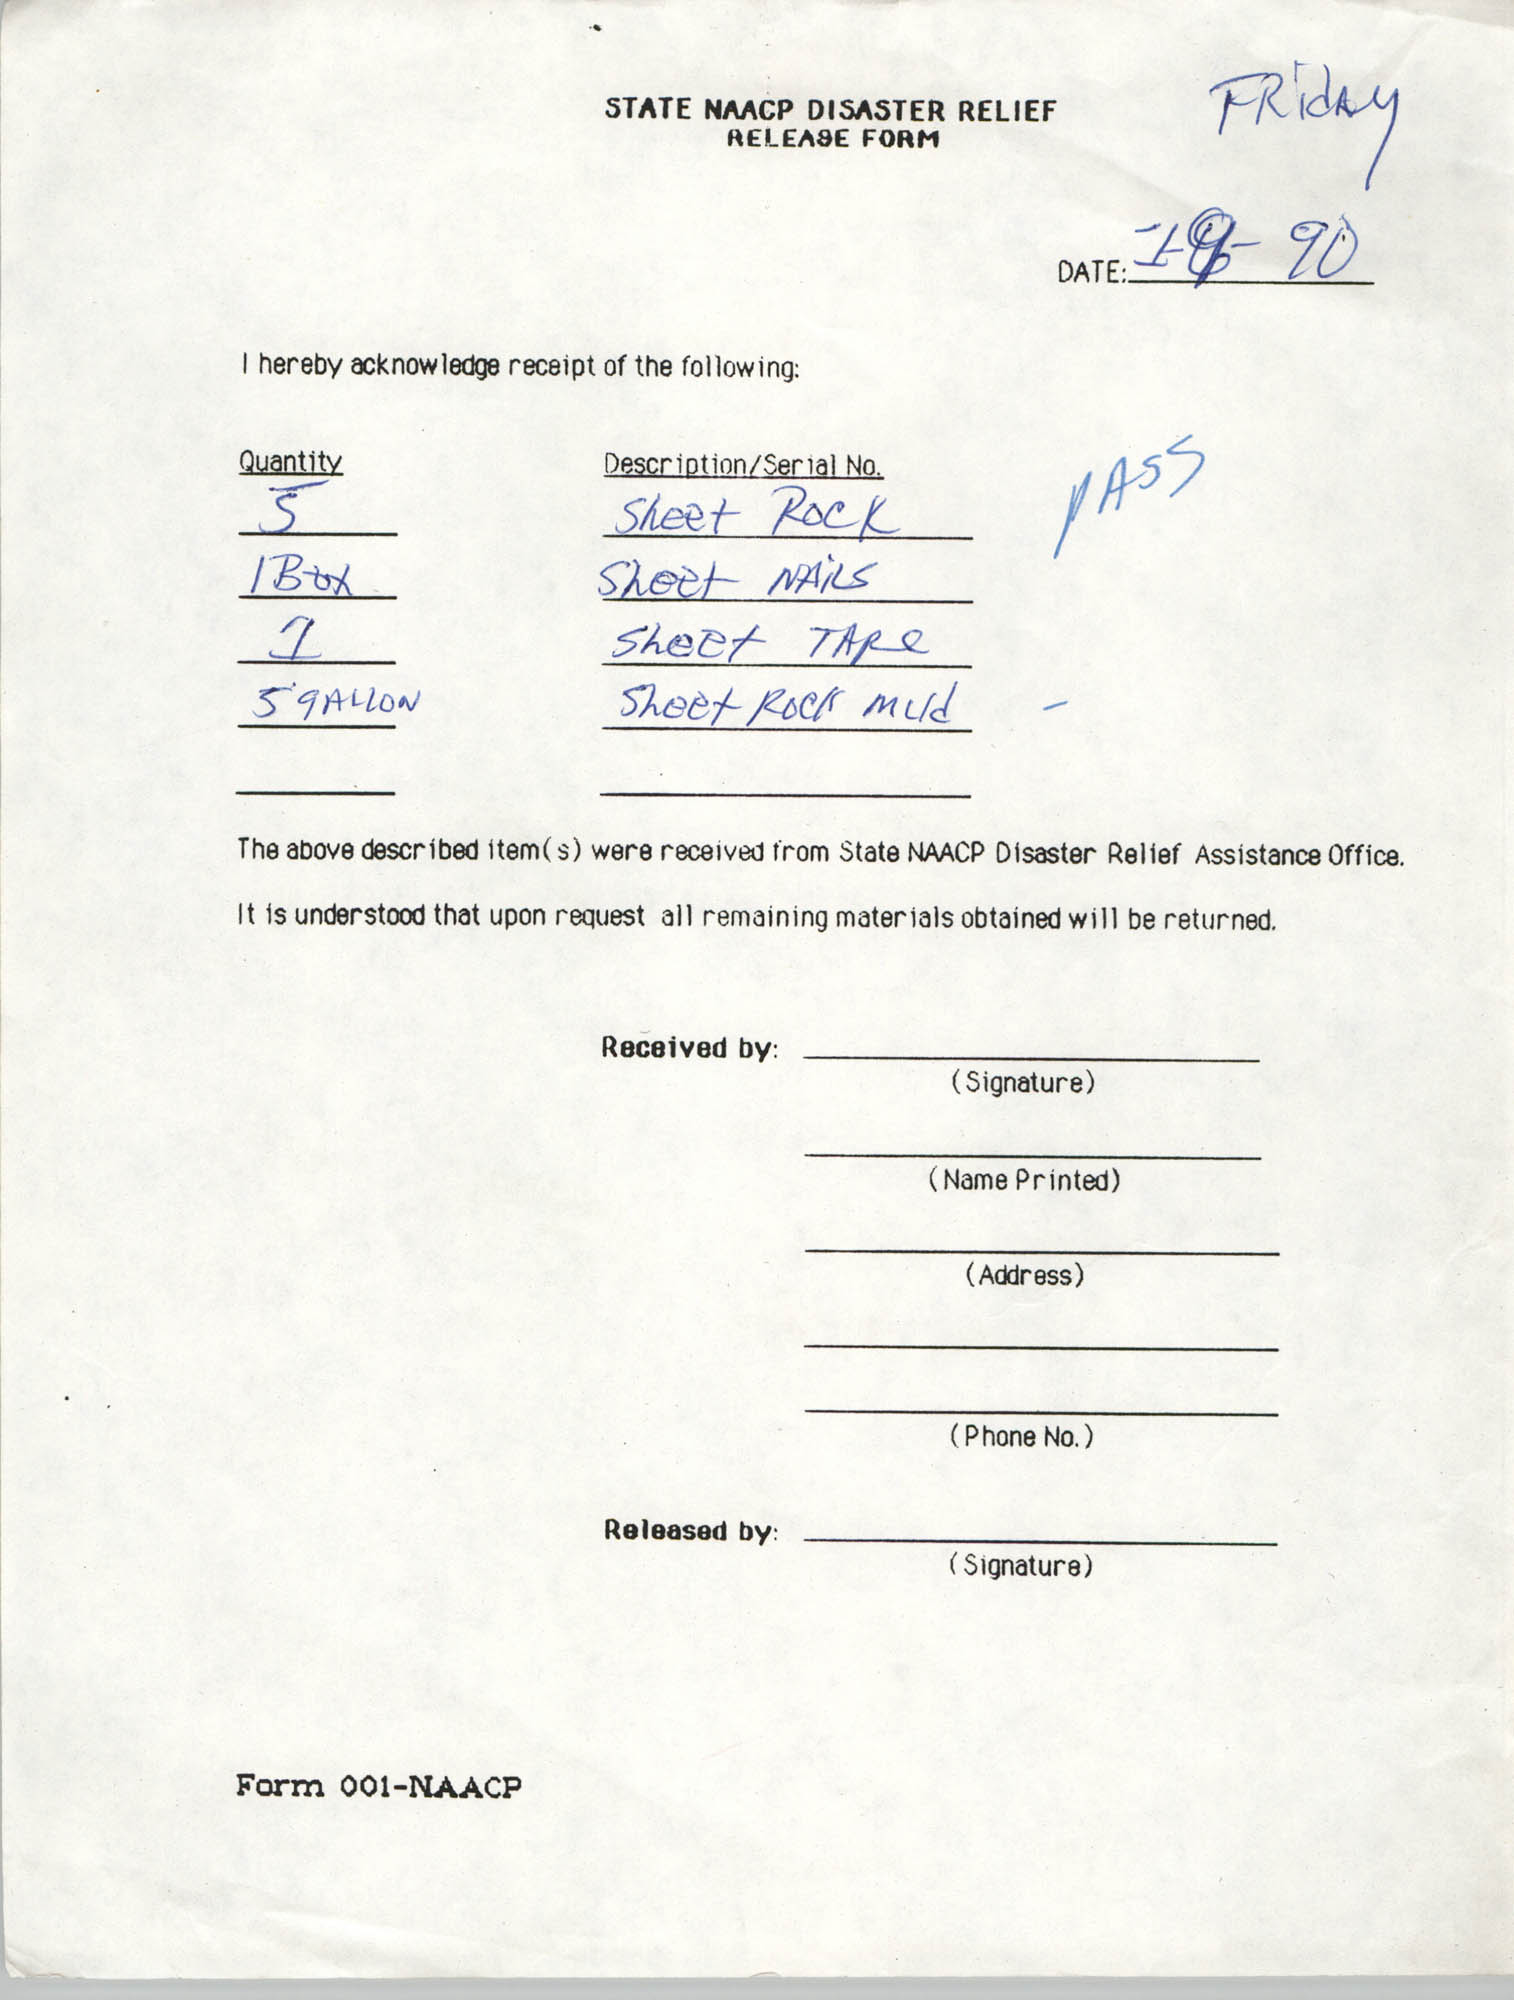 State NAACP Disaster Relief, Hurricane Huge Release Form, 1989, Page 6